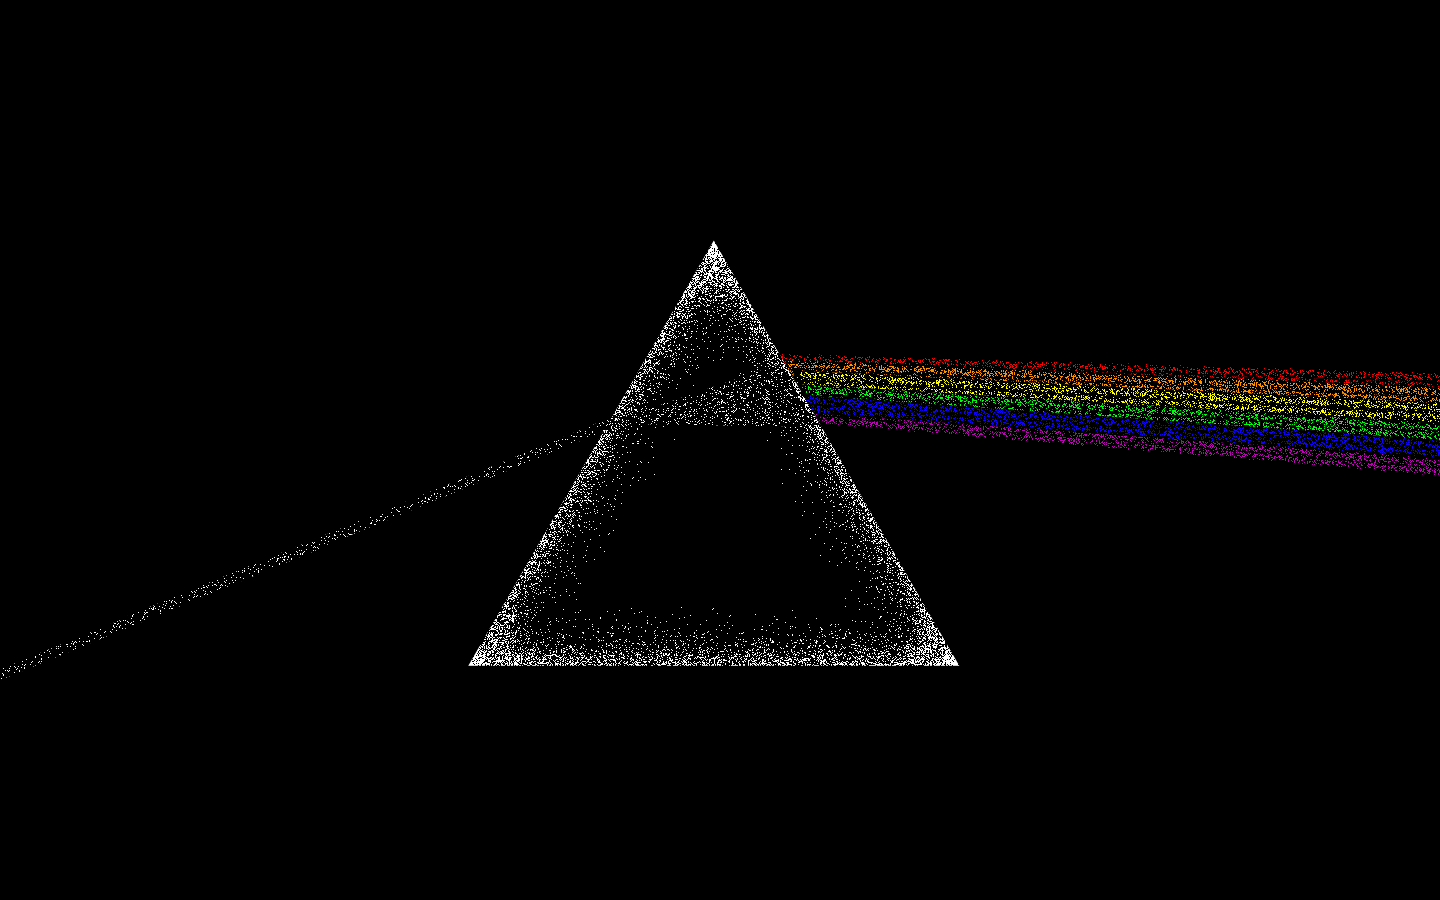 Free Download 1600x900px Dark Side Of The Moon Wallpaper 1600x900